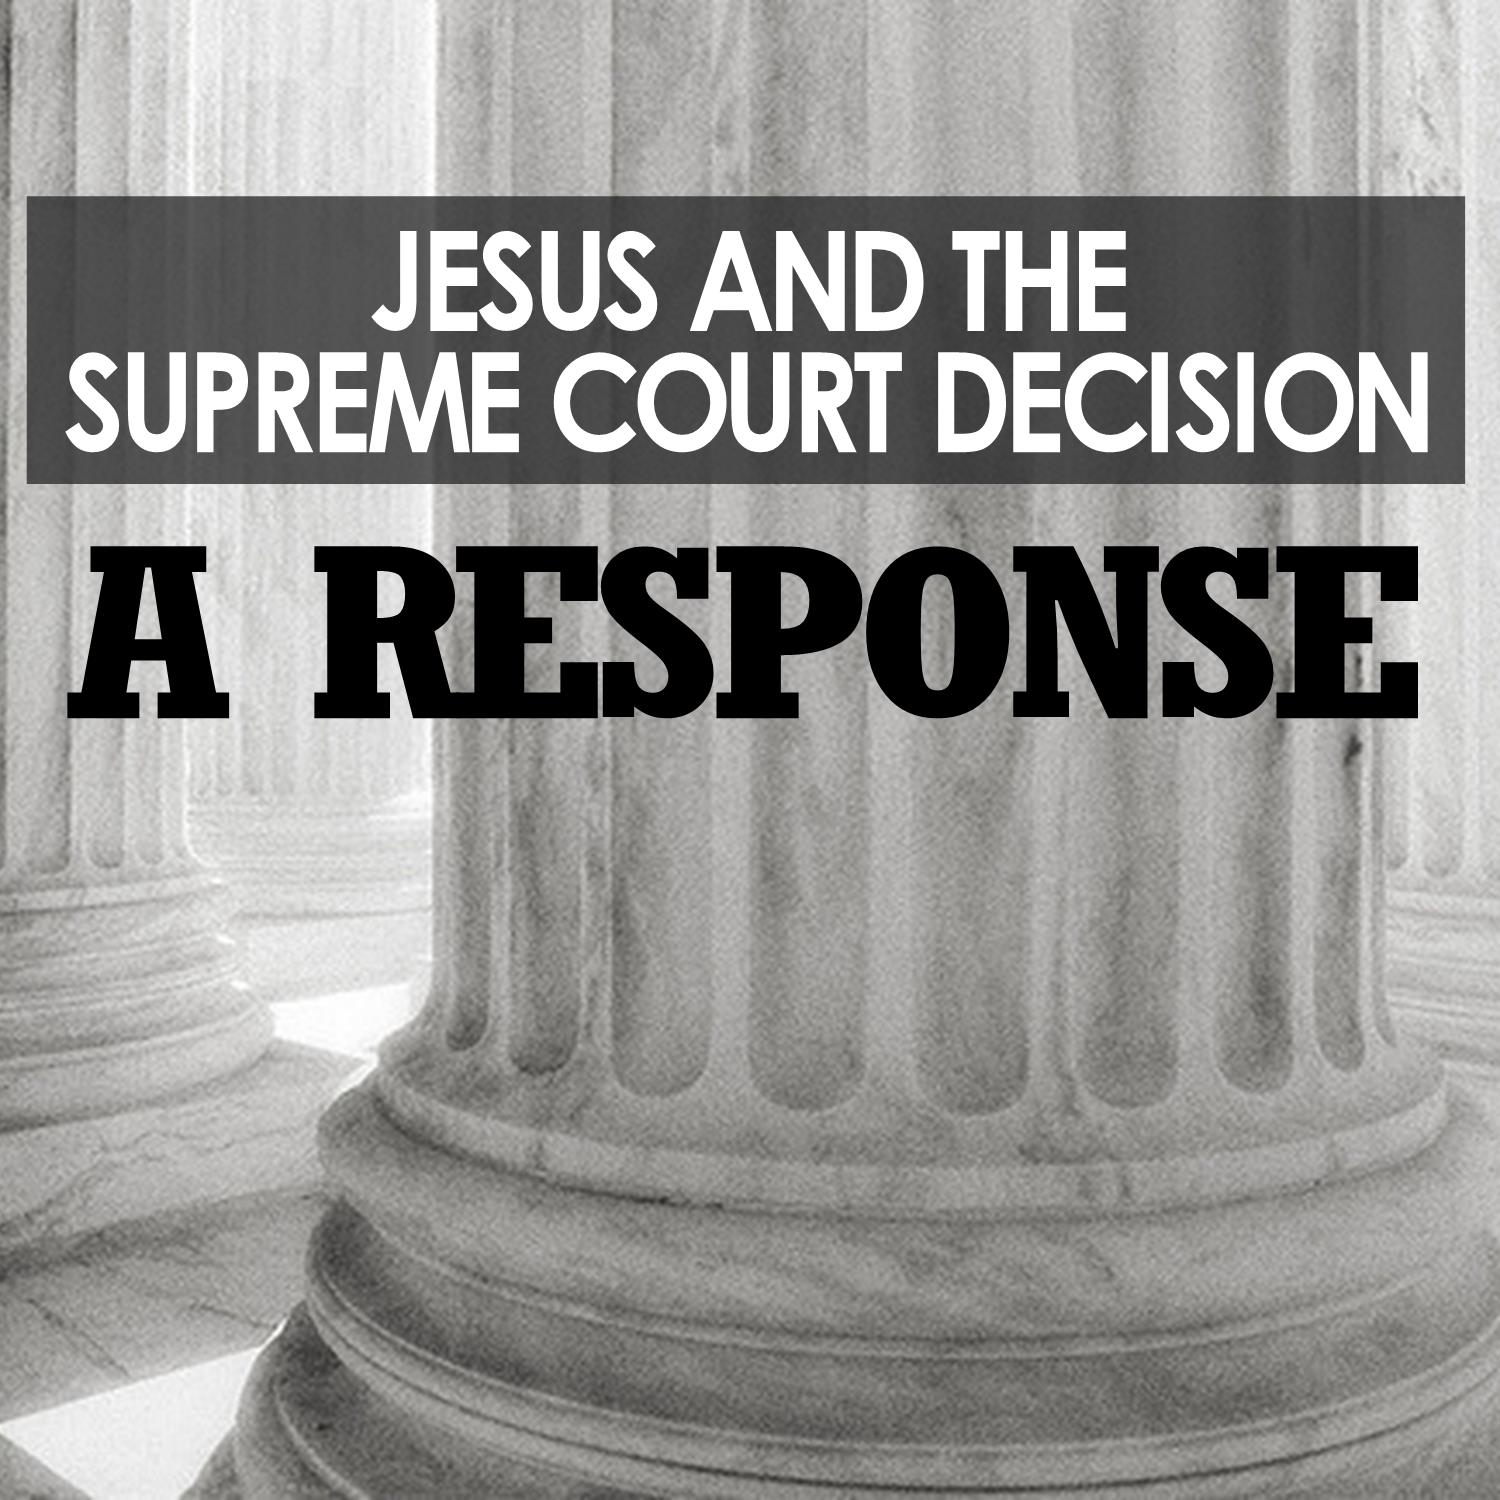 Jesus and the Supreme Court Decision